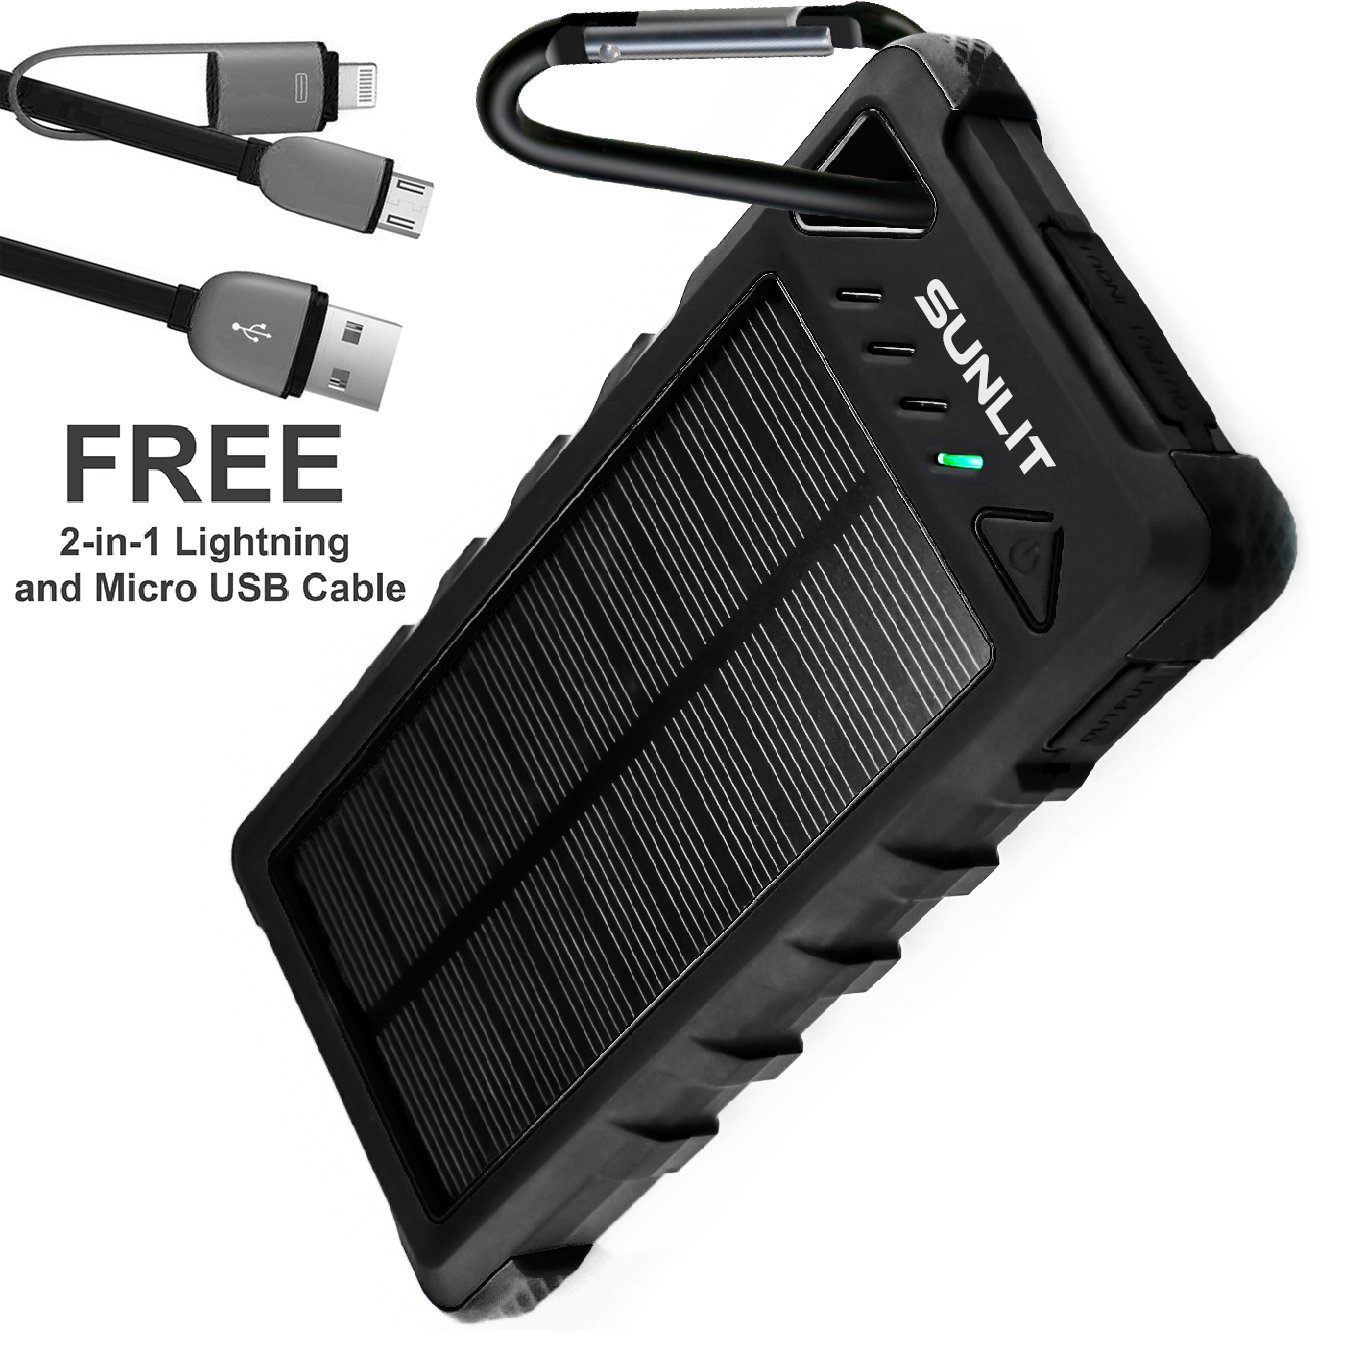 Solar Charger SUNLIT | Portable Power Bank with Flashlight | All Weather Condition | Shockproof Dustproof Waterproof IP67 | 16000mAh Dual USB Battery Pack For Iphone Samsung Android (BLACK)